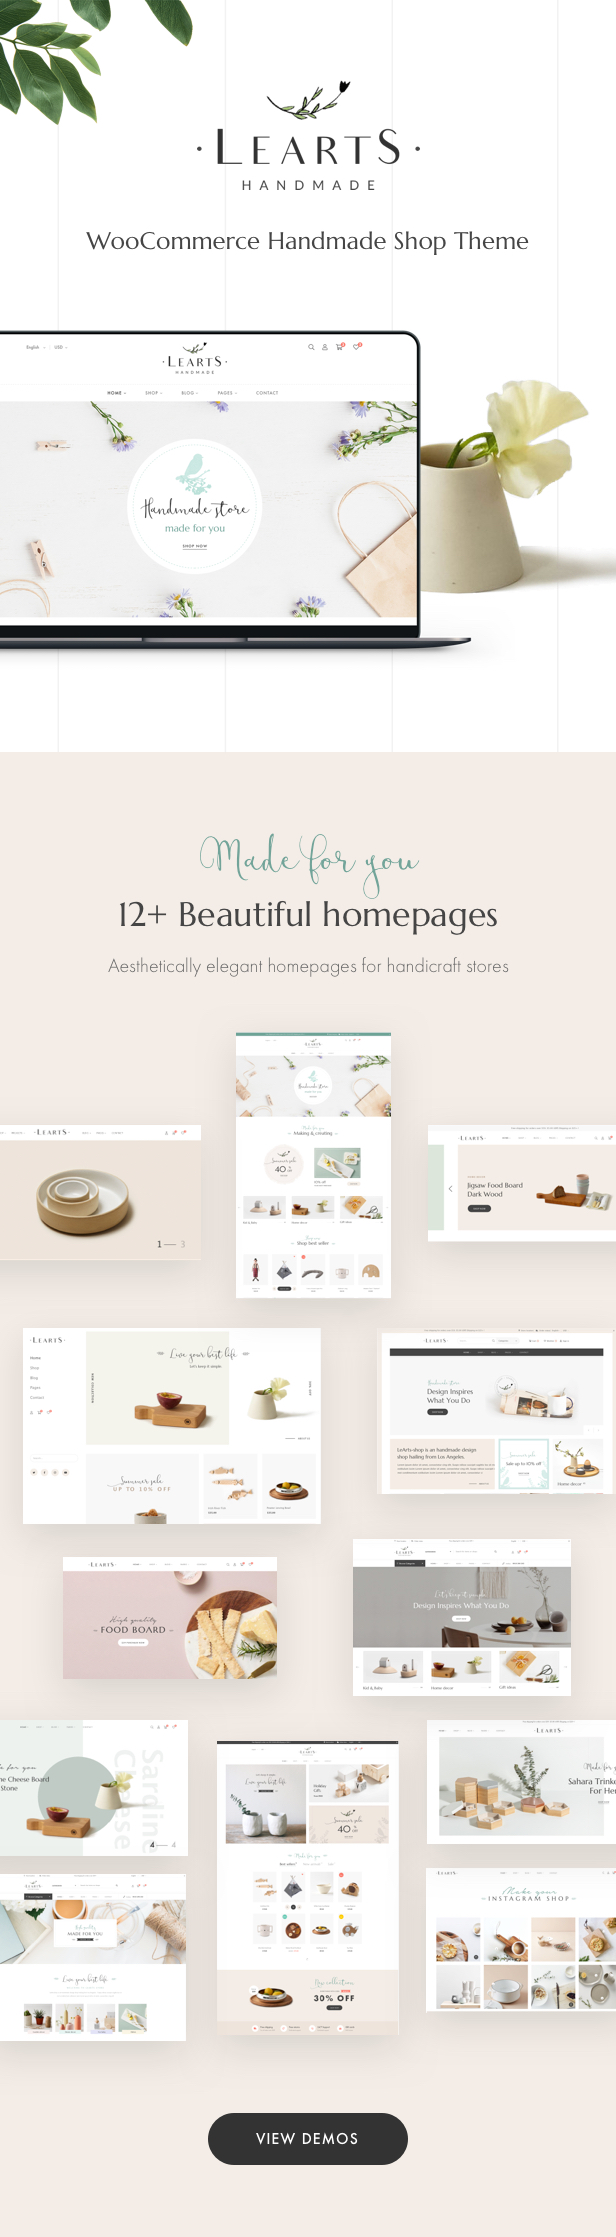 LeArts - WooCommerce Handmade Shop WordPress Theme - 5